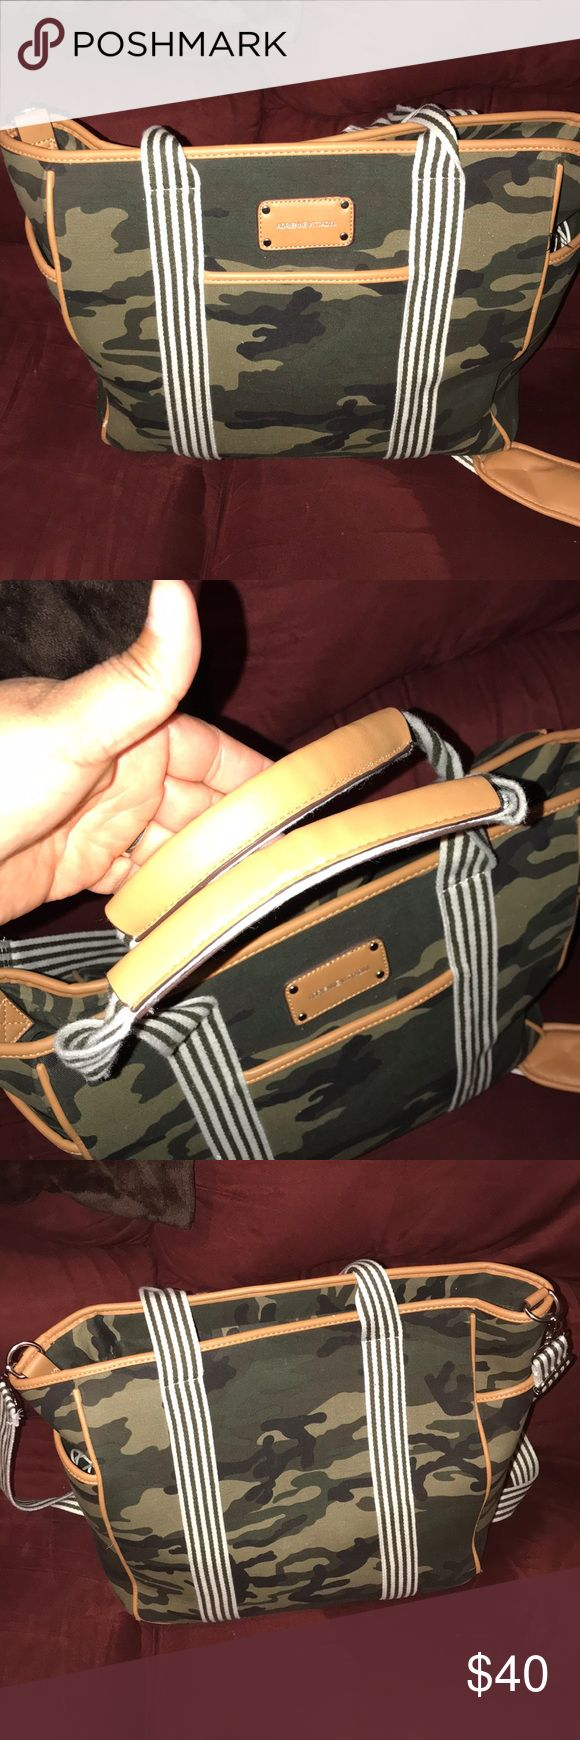 Luggage bag Very large luggage bag. Camouflage in like new condition. Was using as a laptop bag. Side compartments. Tote straps and long shoulder strap Adrienne Vittadini Bags Travel Bags